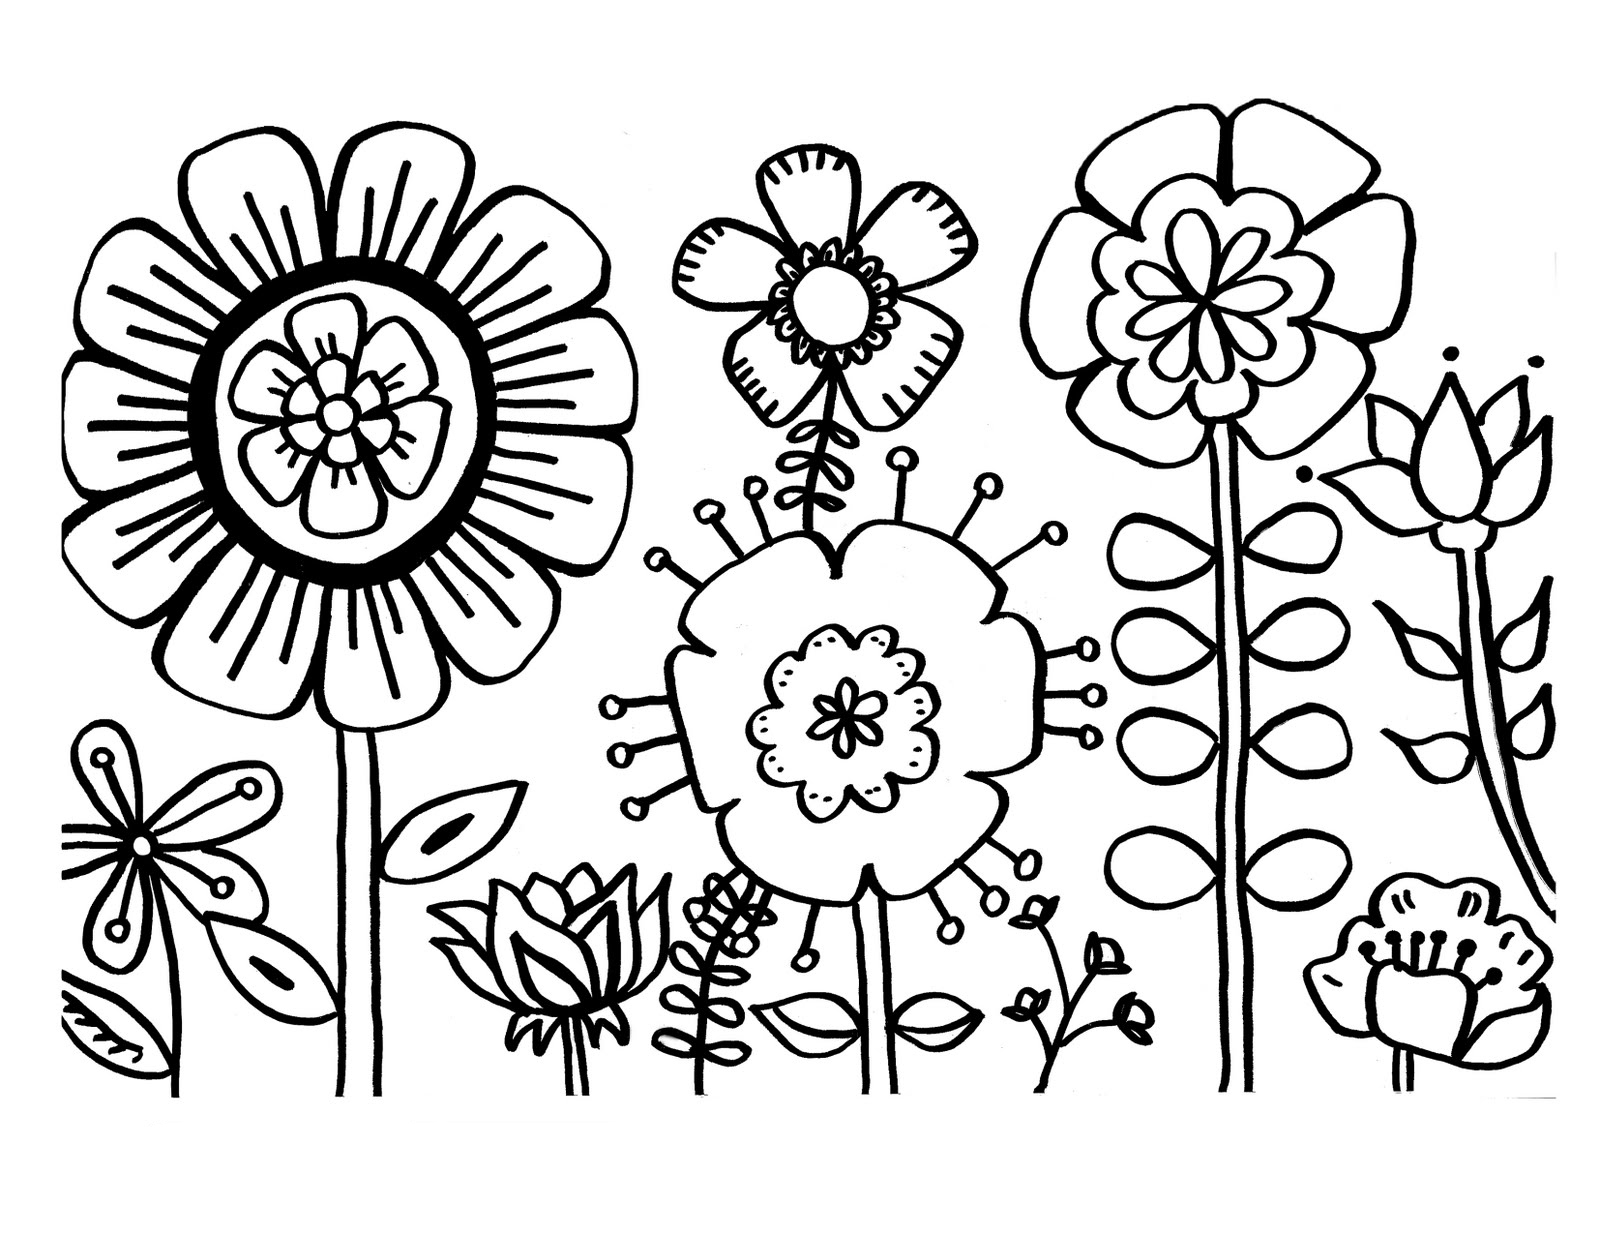 coloring pages of bladderworts plants - photo#47